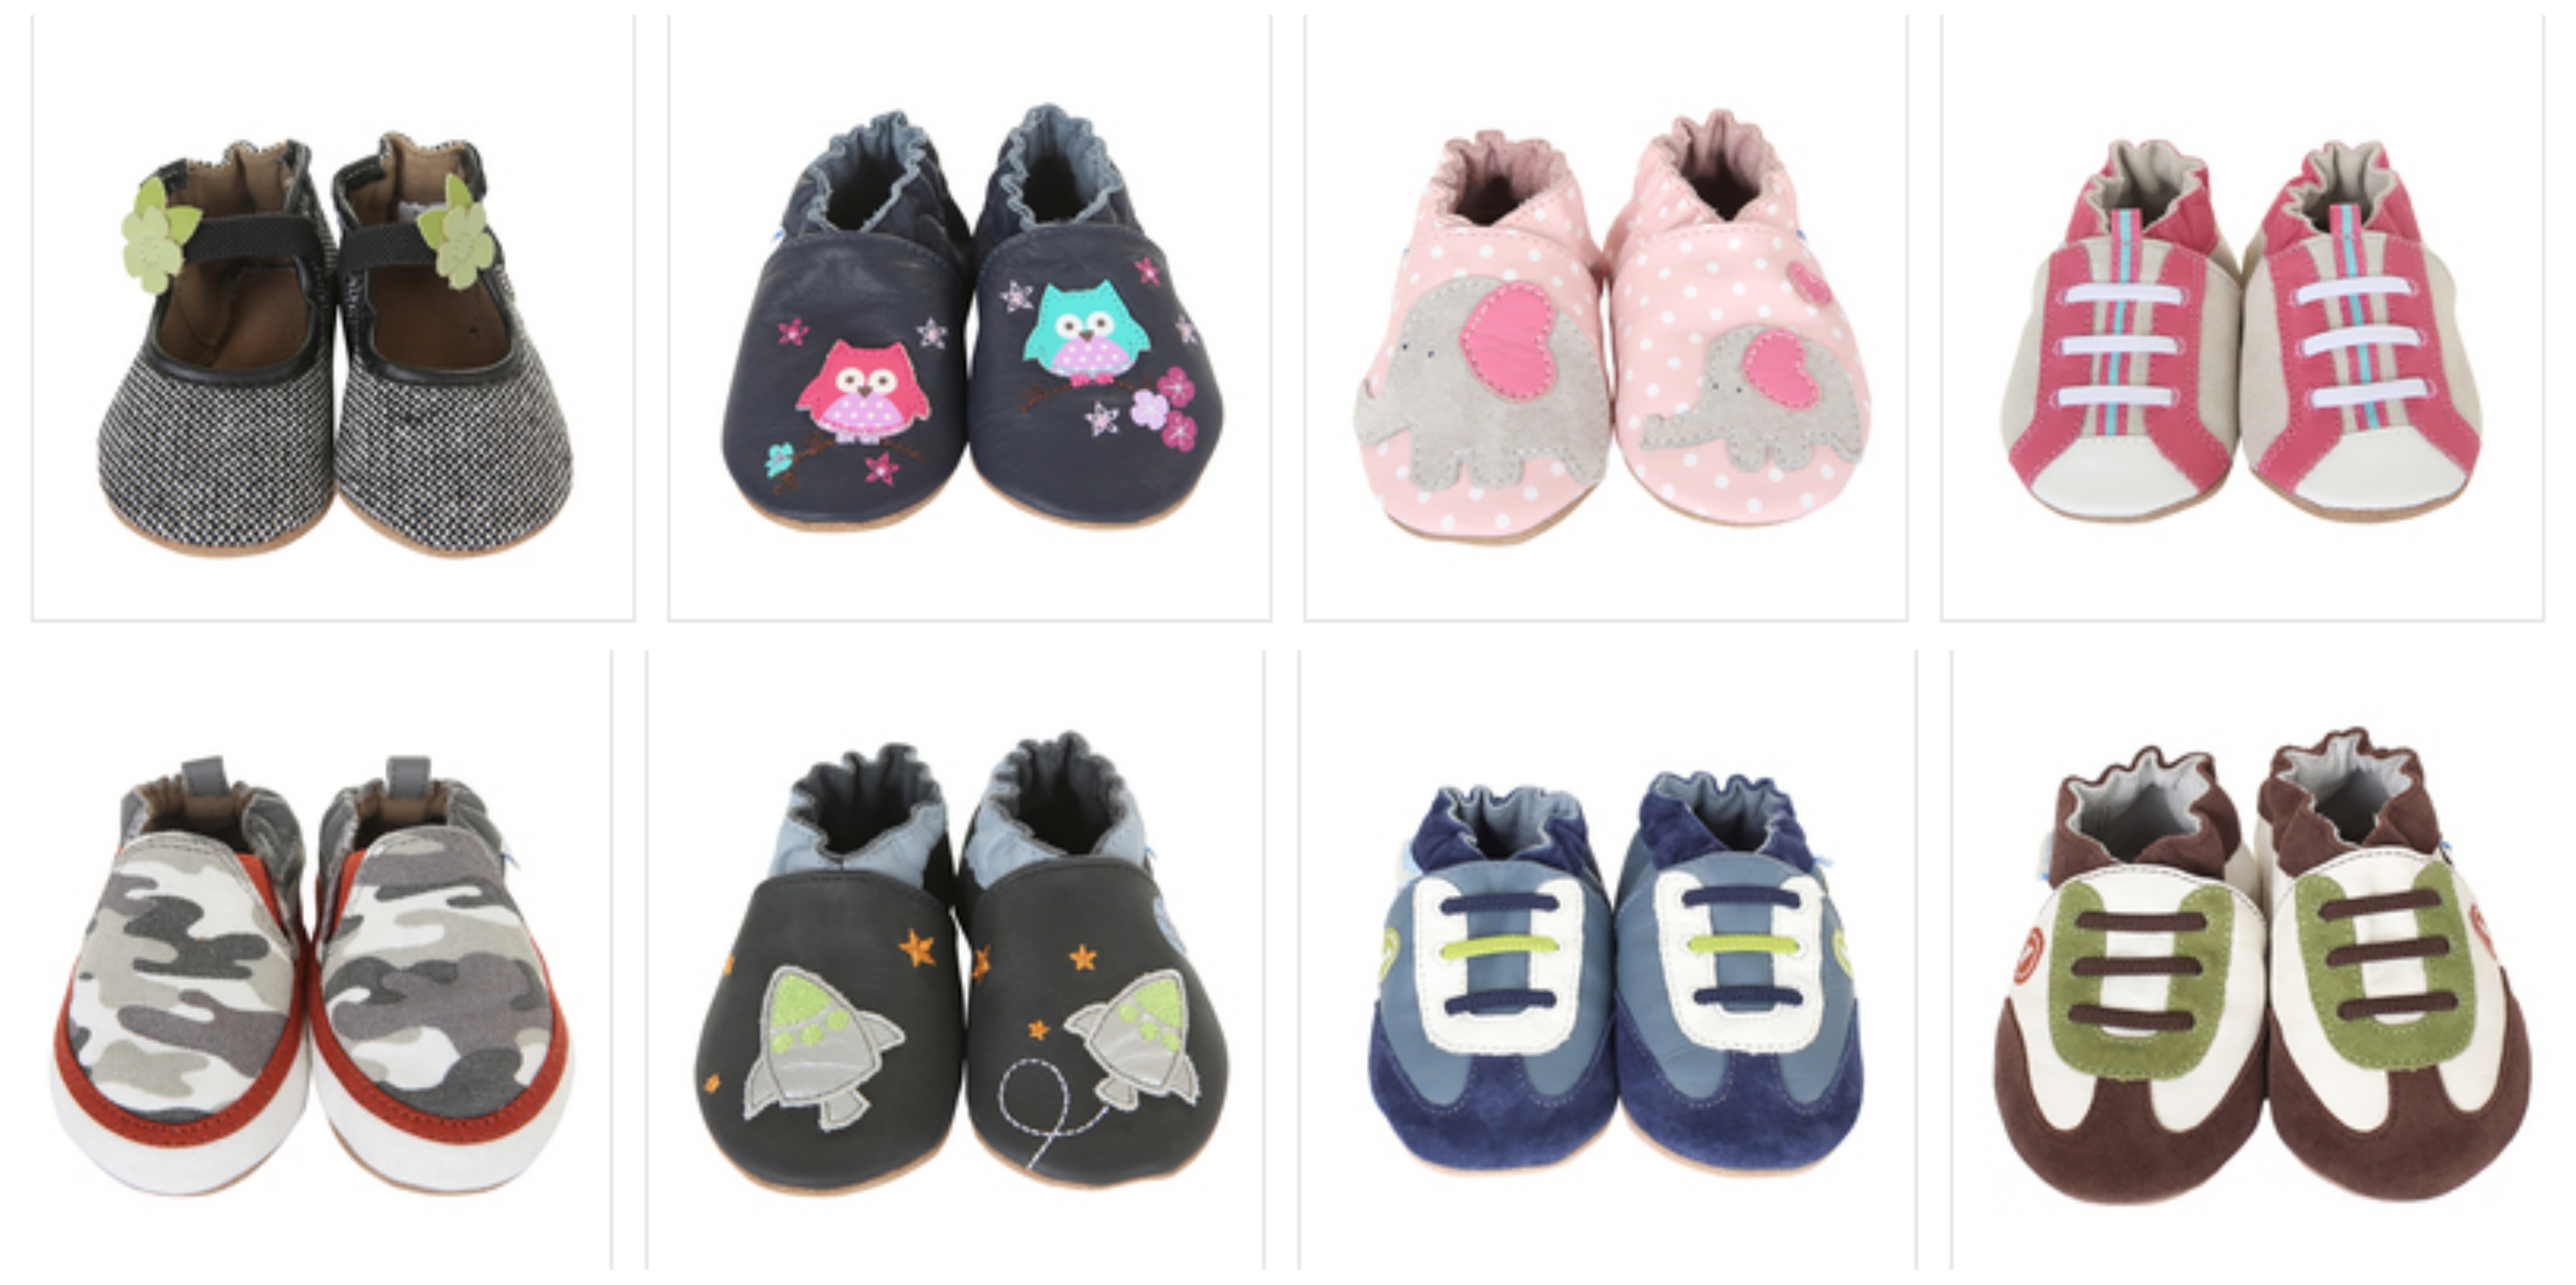 Robeez Soft Sole Shoes For Baby Ourkidsmom